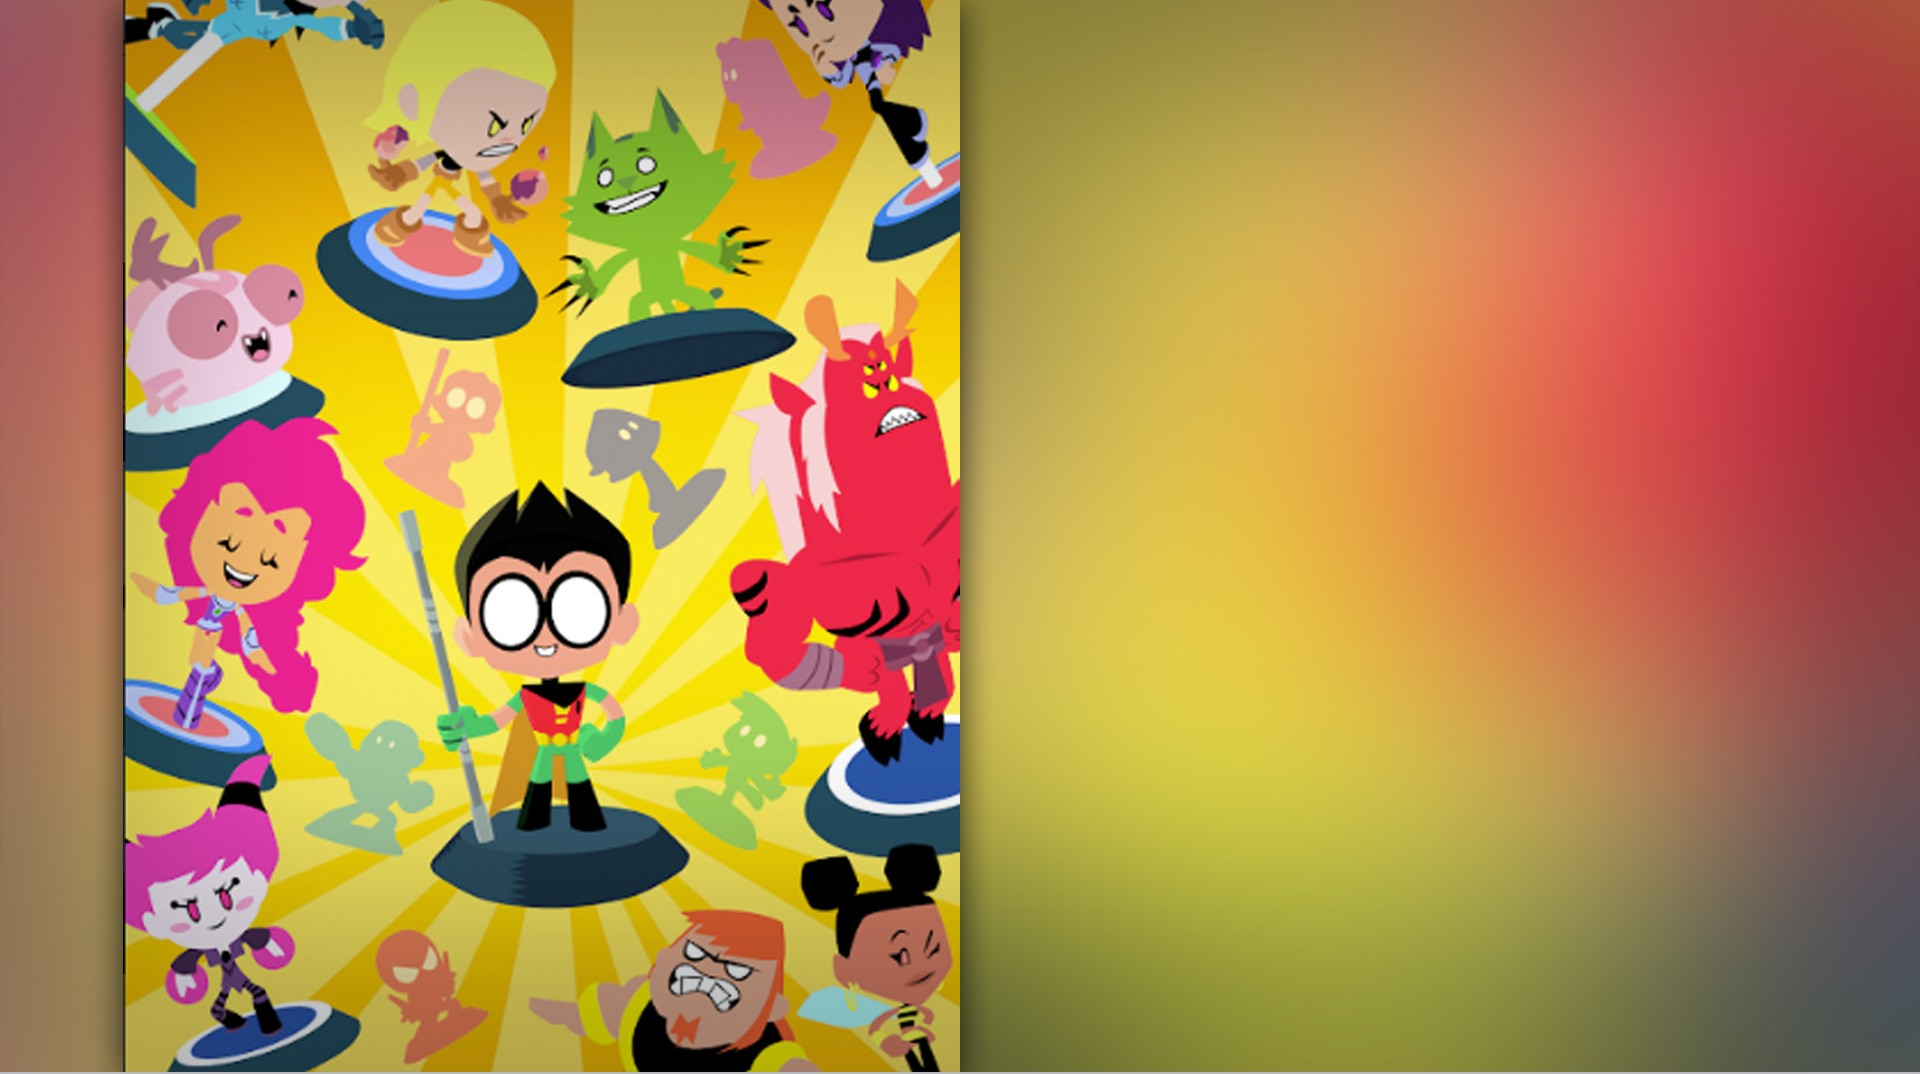 Download Teeny Titans  Teen Titans Go On Pc With Bluestacks-4510